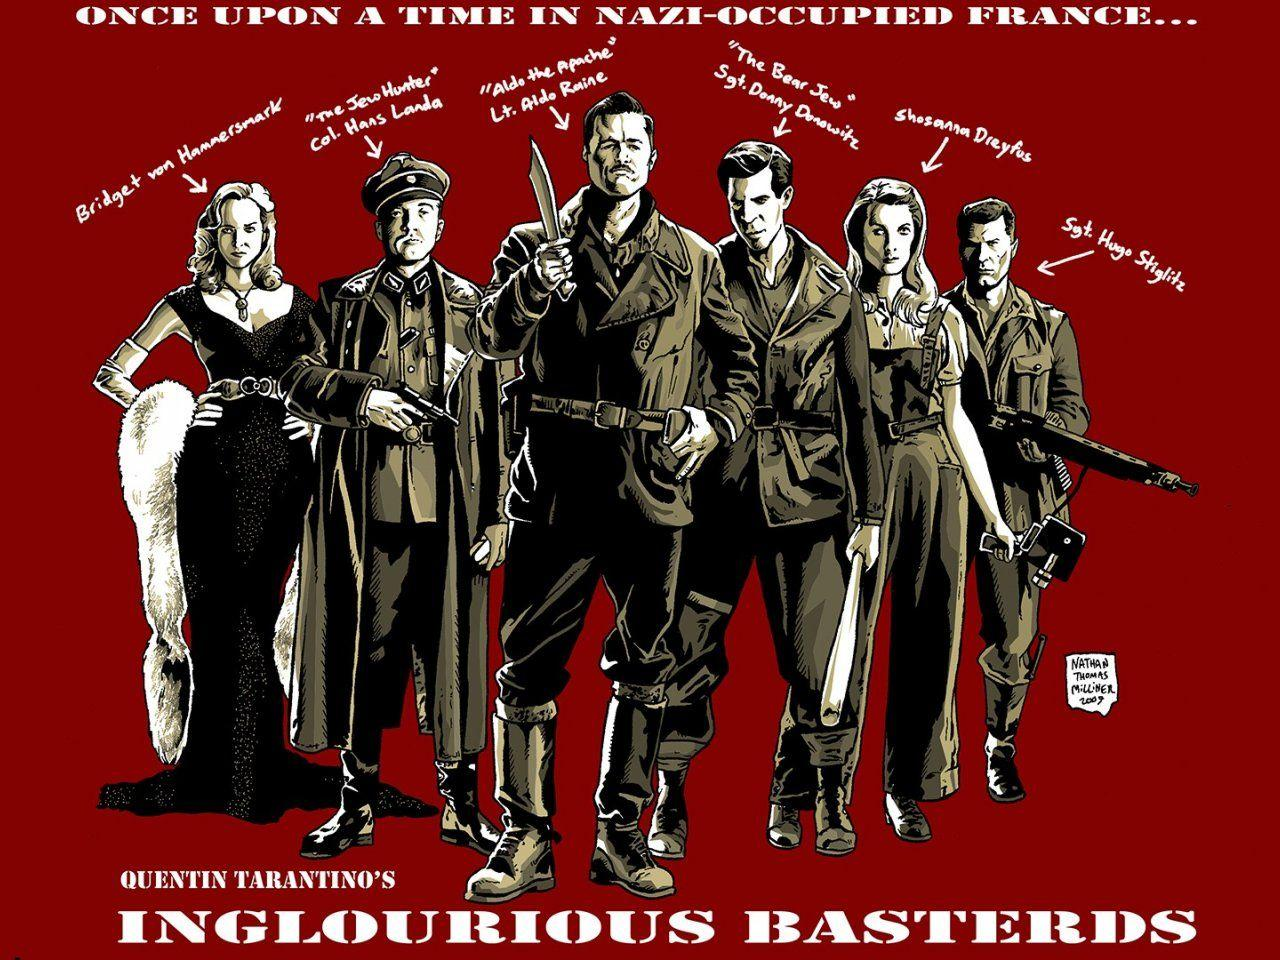 wallpaper: Inglourious Basterds, movie, Quentin Tarantino, Brad